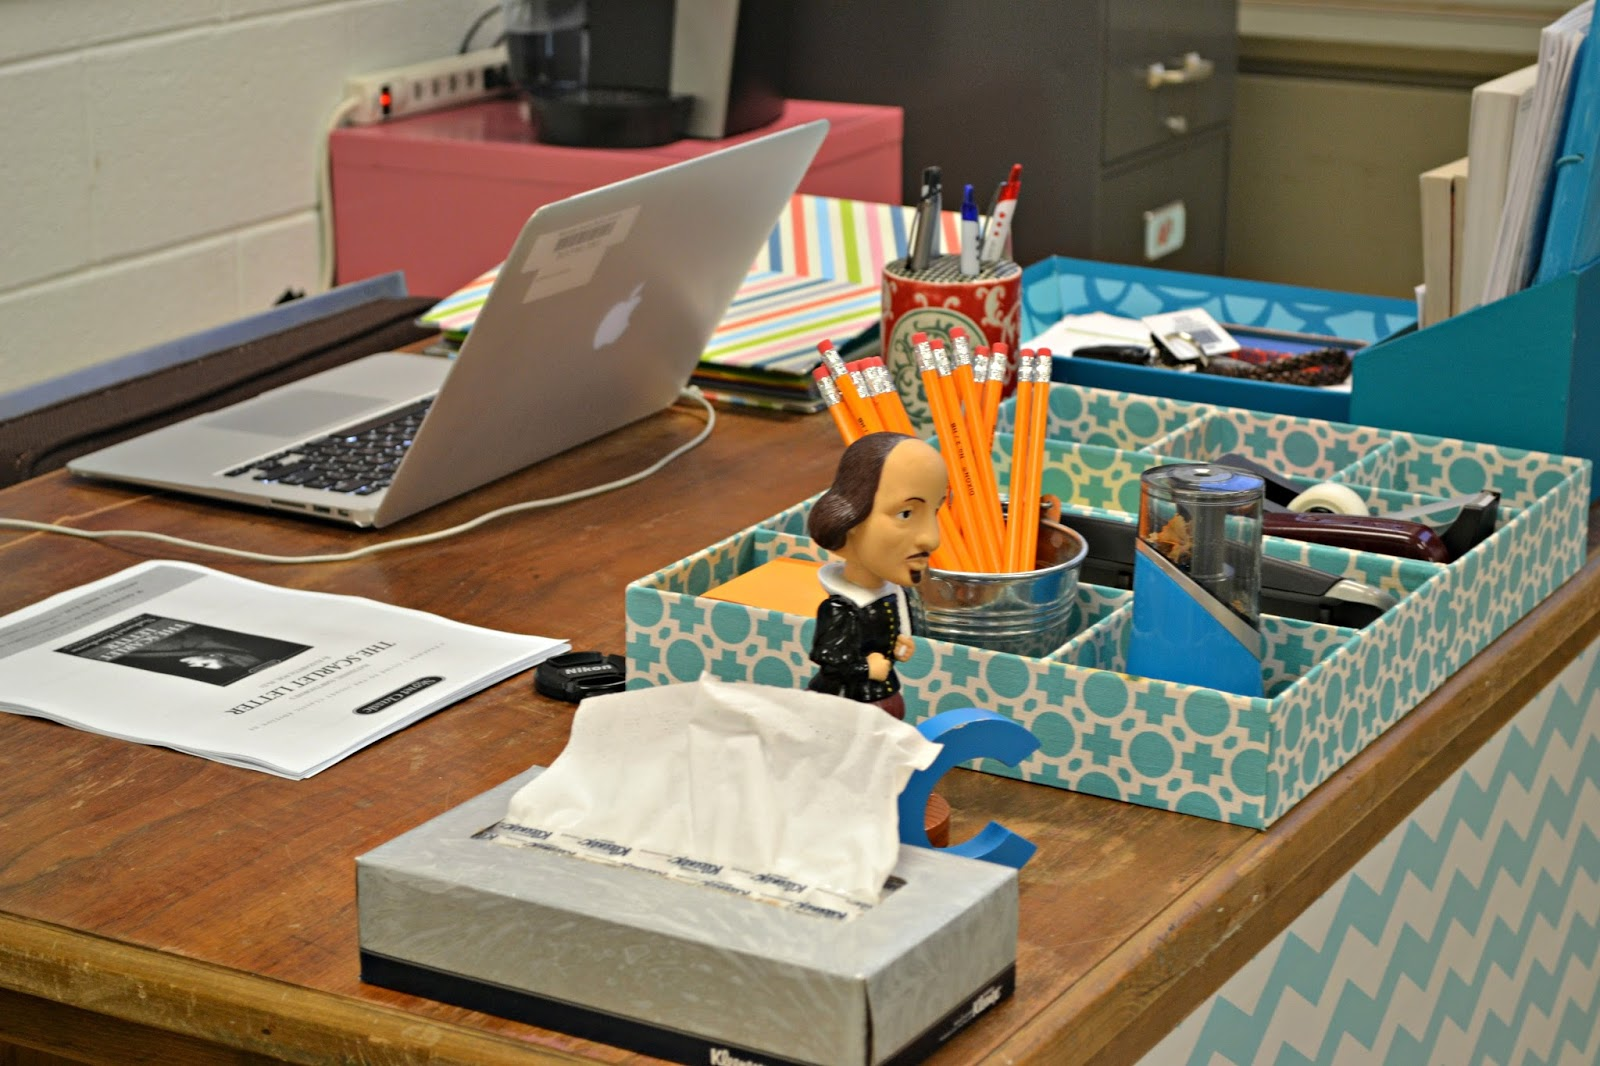 E myself and i teaching tuesday decoration and - Classroom desk organization ideas ...